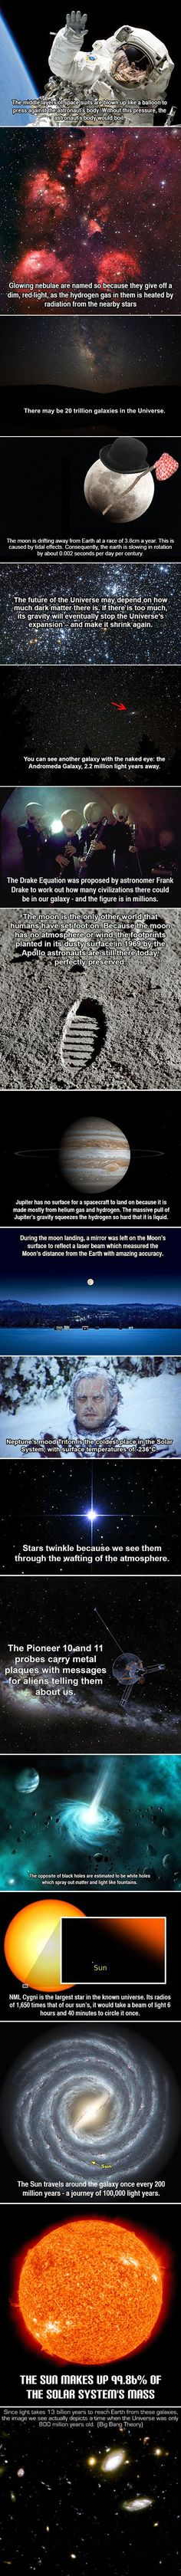 Space geeks rejoice! Here are some fun and cool facts that just might surprise you.